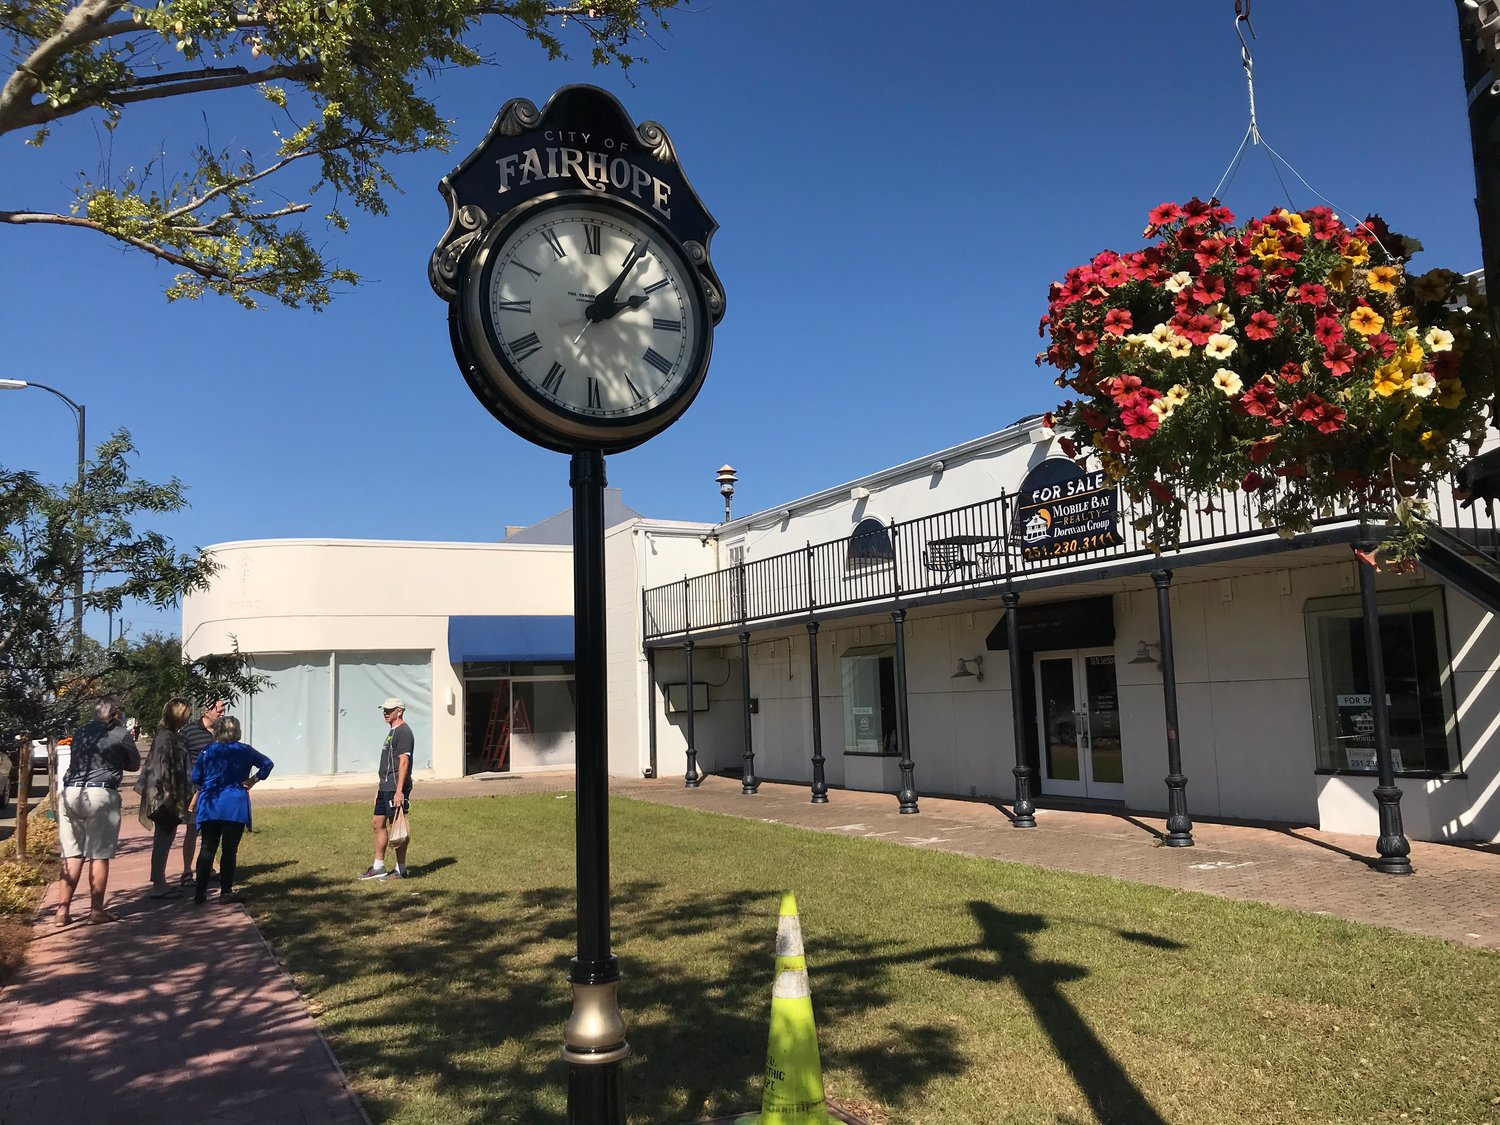 Only one more soil test will be needed at the corner where the Fairhope city clock is located, officials said.